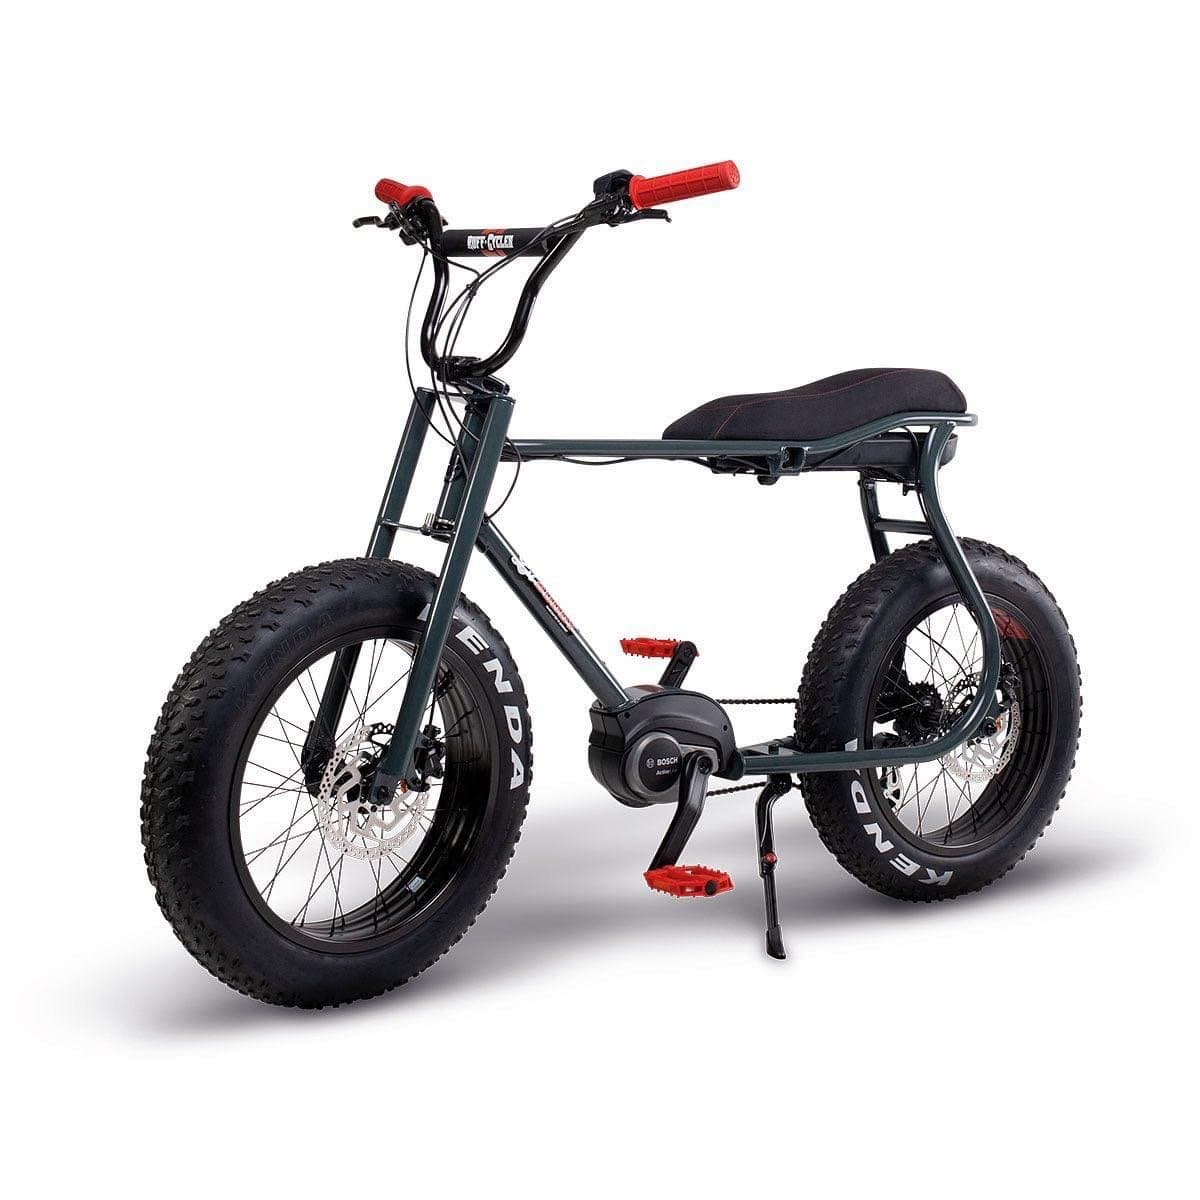 Ruff cycles - Lil' Buddy Electric Bike - Beyond Electrek